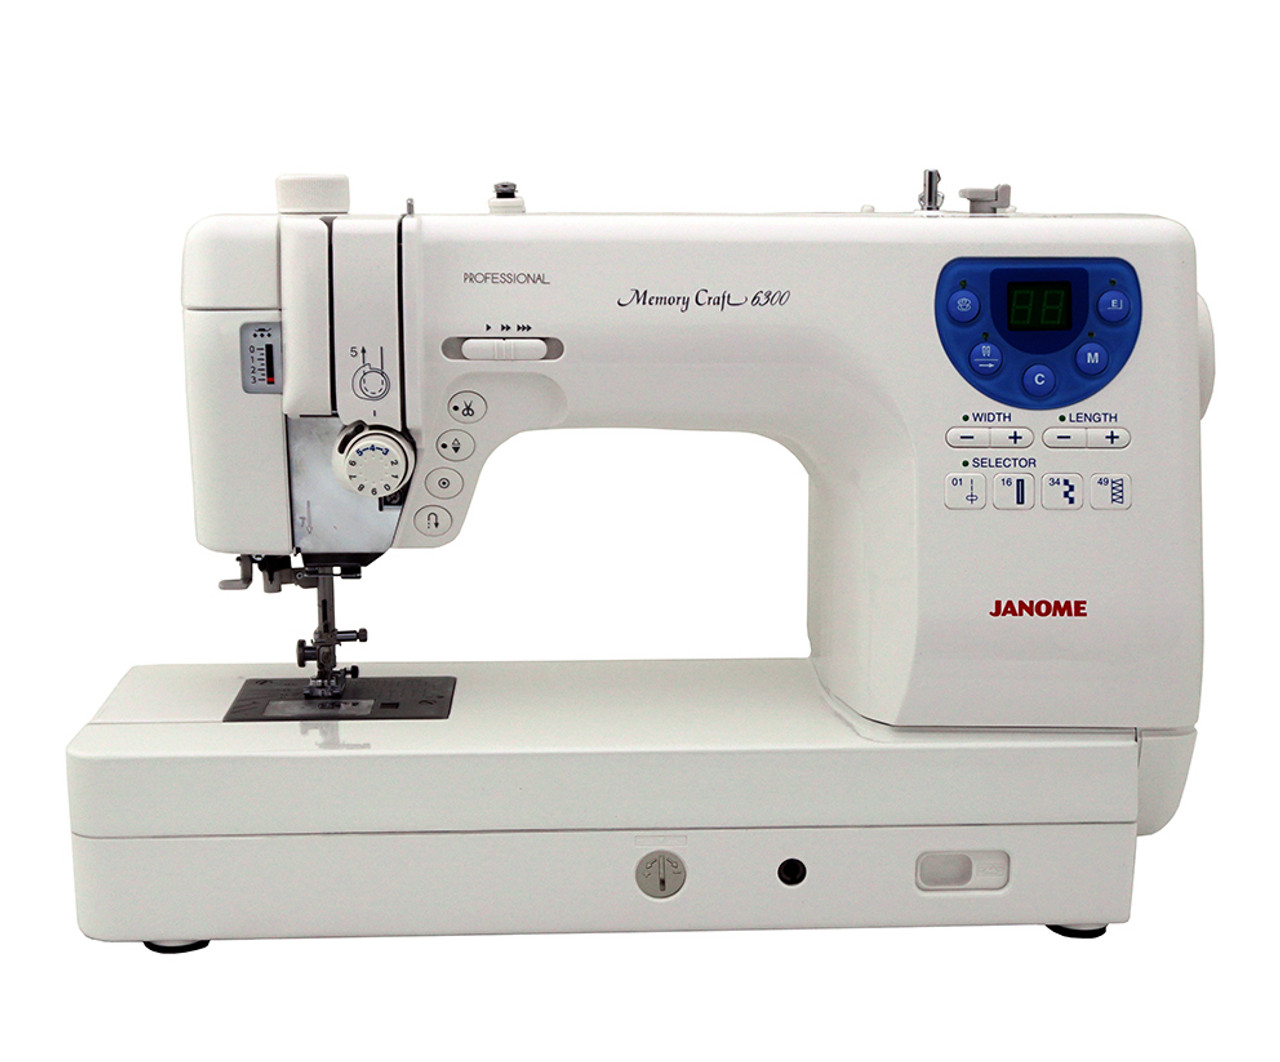 65809aea Janome Memory Craft 6300P Sewing Machine with Exclusive Bonus Bundle  $949.00 - FREE SHIPPING!